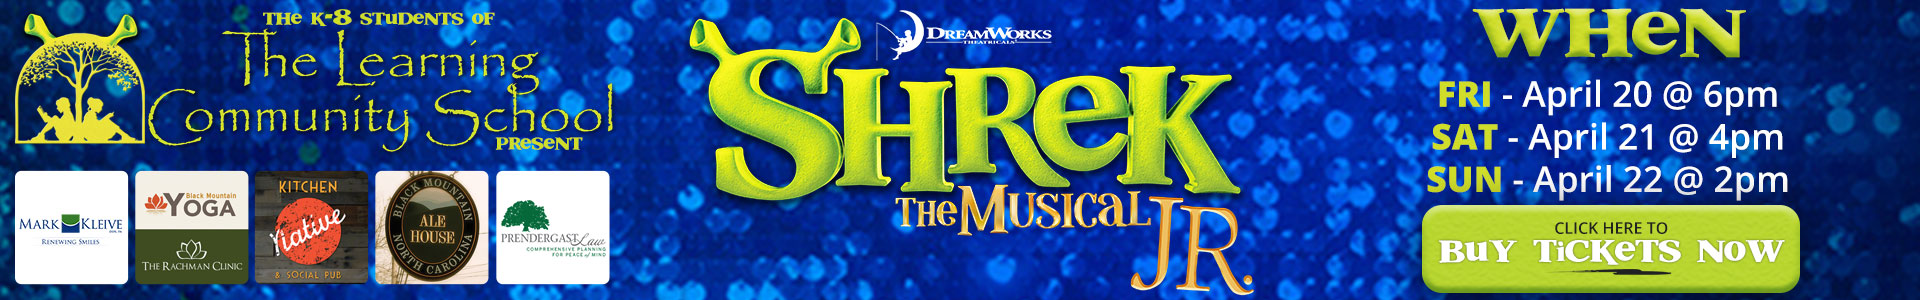 Buy Tickets to Shrek The Musical